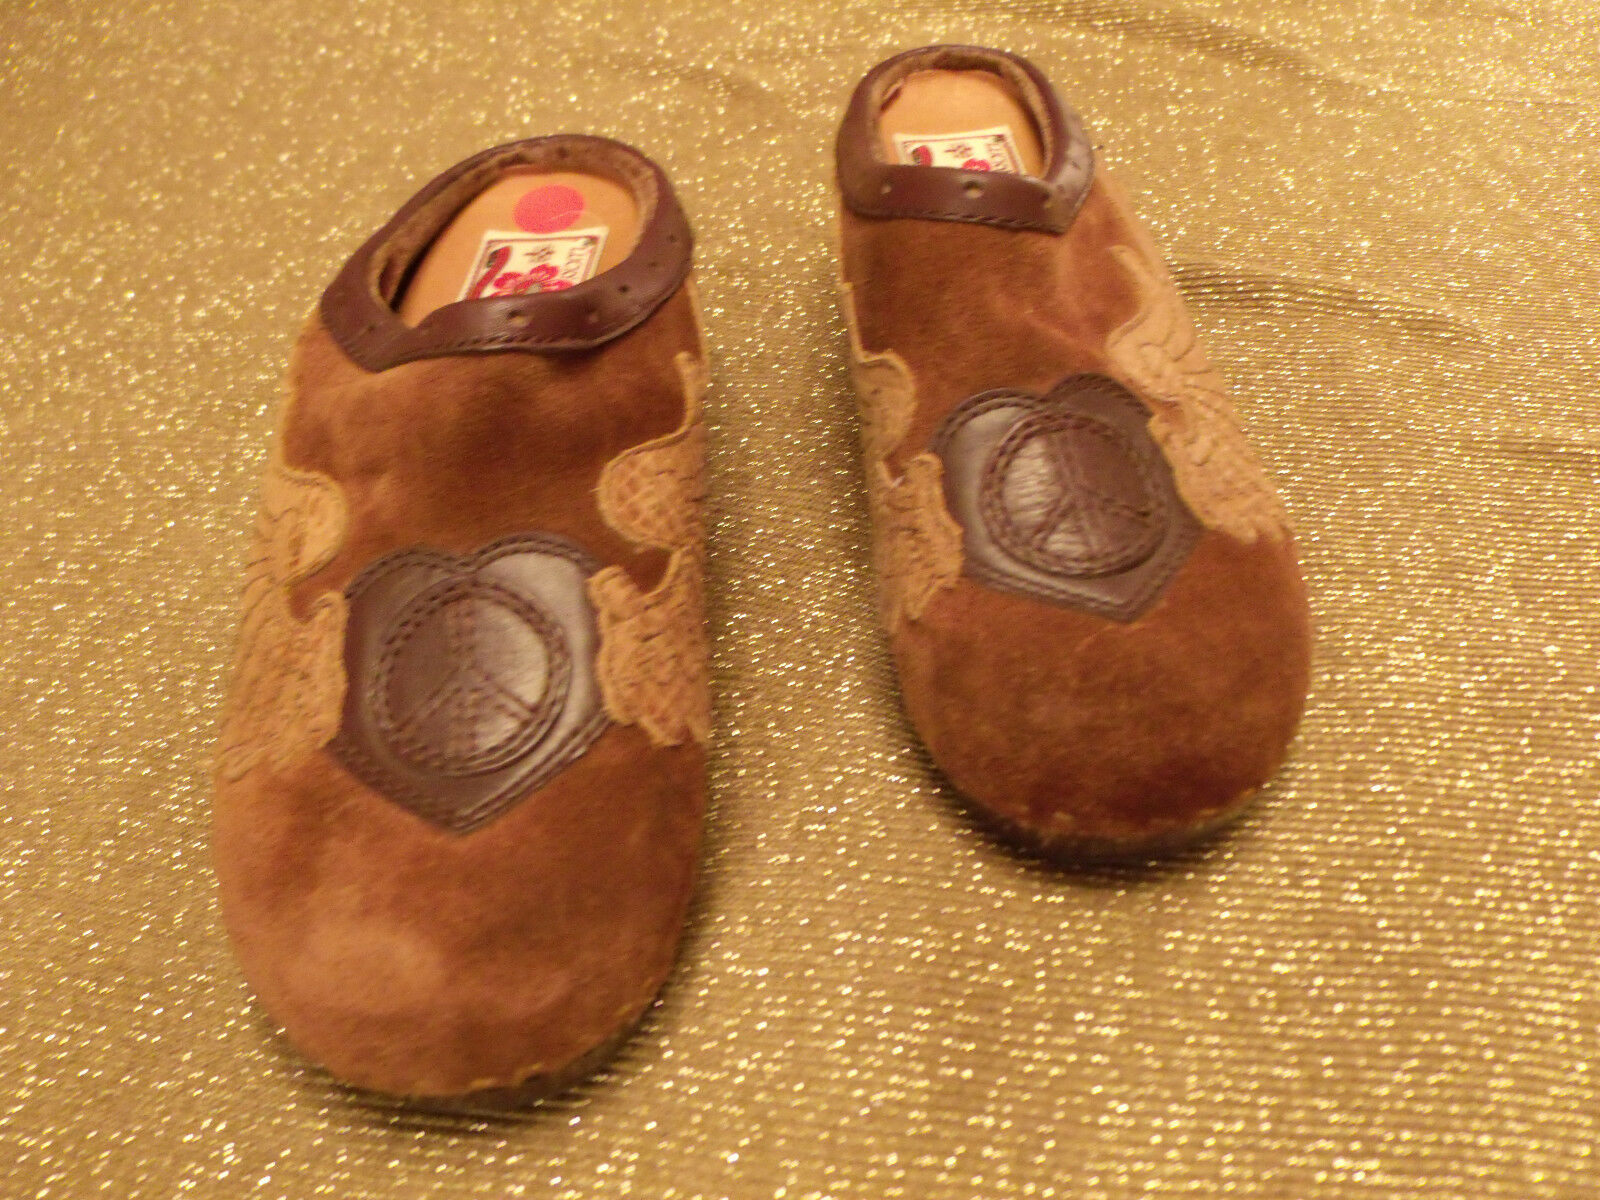 LUCKY Size BRAND Fable Clogs Brown Size LUCKY 7 / 37 Womens Peace Love Wings Mules Shoes 65e29b